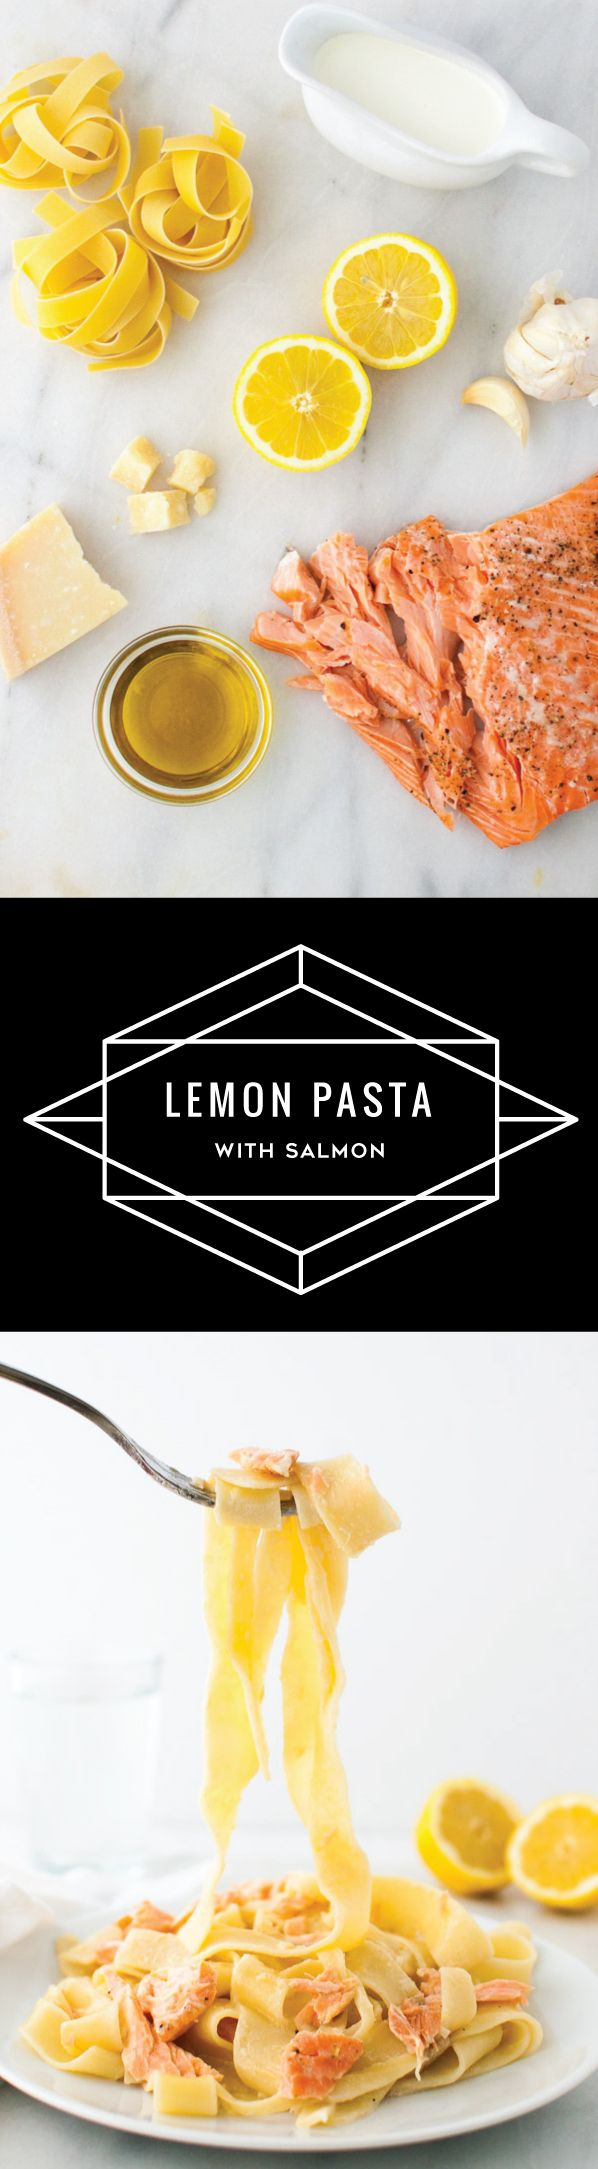 Lemon Pasta with Salmon - Pasta with salmon in a light lemon sauce with a touch of cream. | tamingofthespoon.com